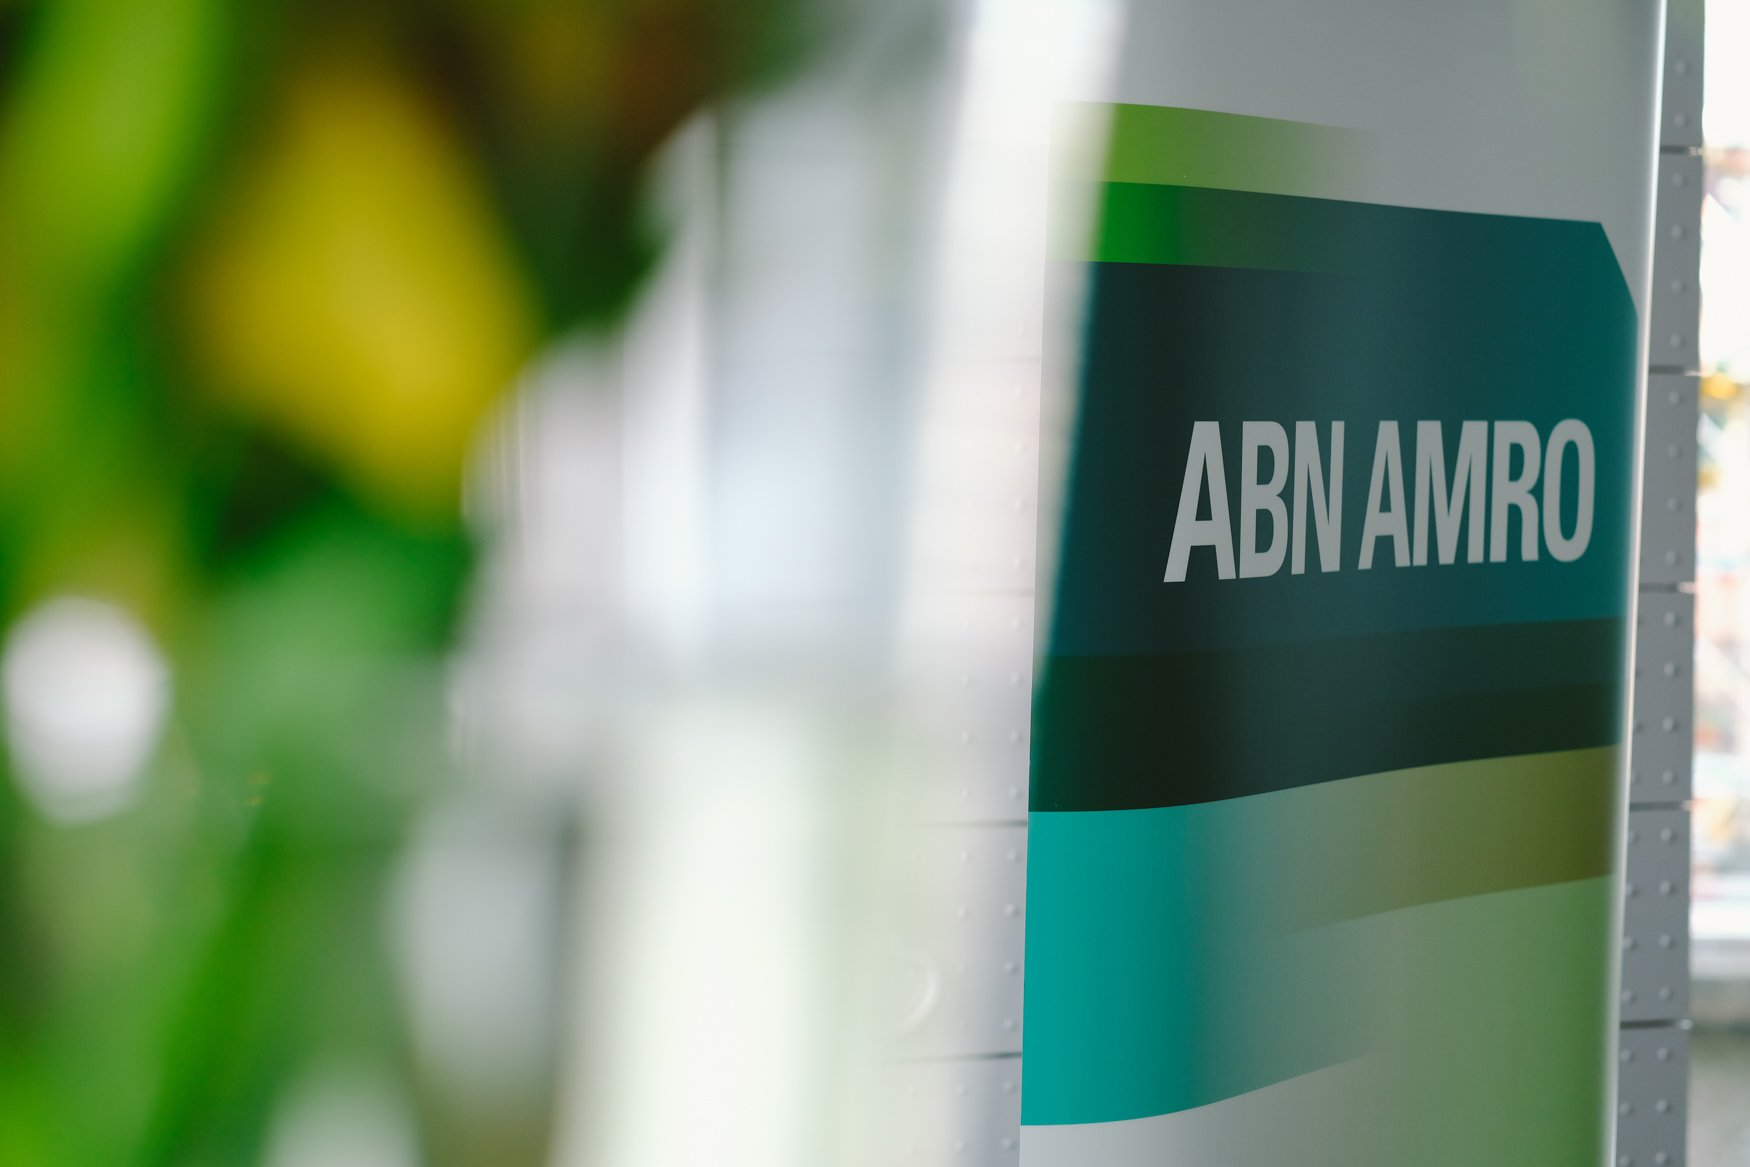 abn amro innovations & technologies